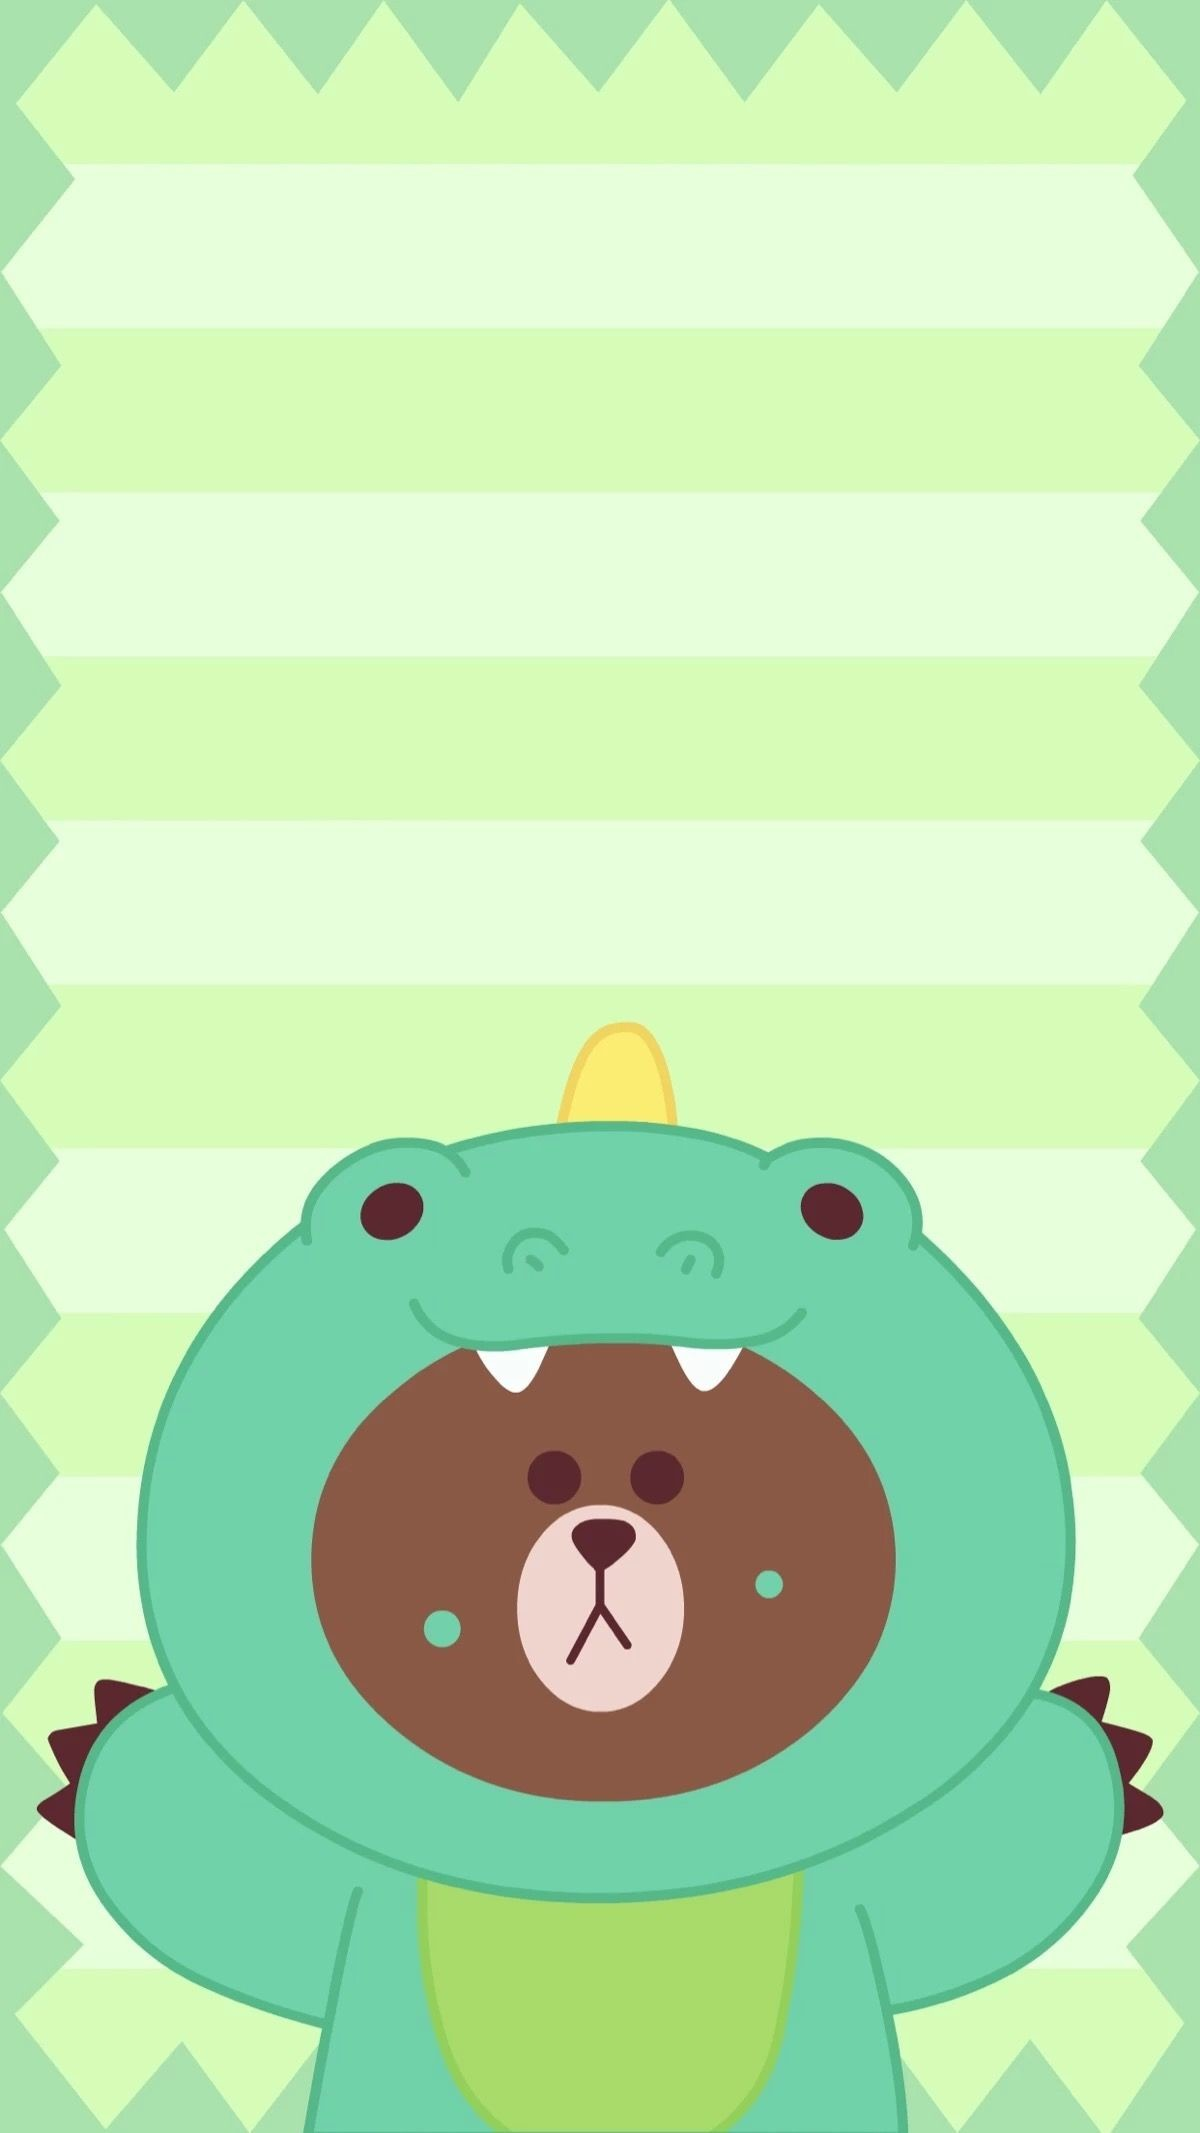 Res: 1200x2133, Cony Brown, Funny Wallpapers, Iphone Wallpapers, Line Friends, Wallpaper  Backgrounds, Drawing Ideas, Rilakkuma, Hologram, Iphone Cases